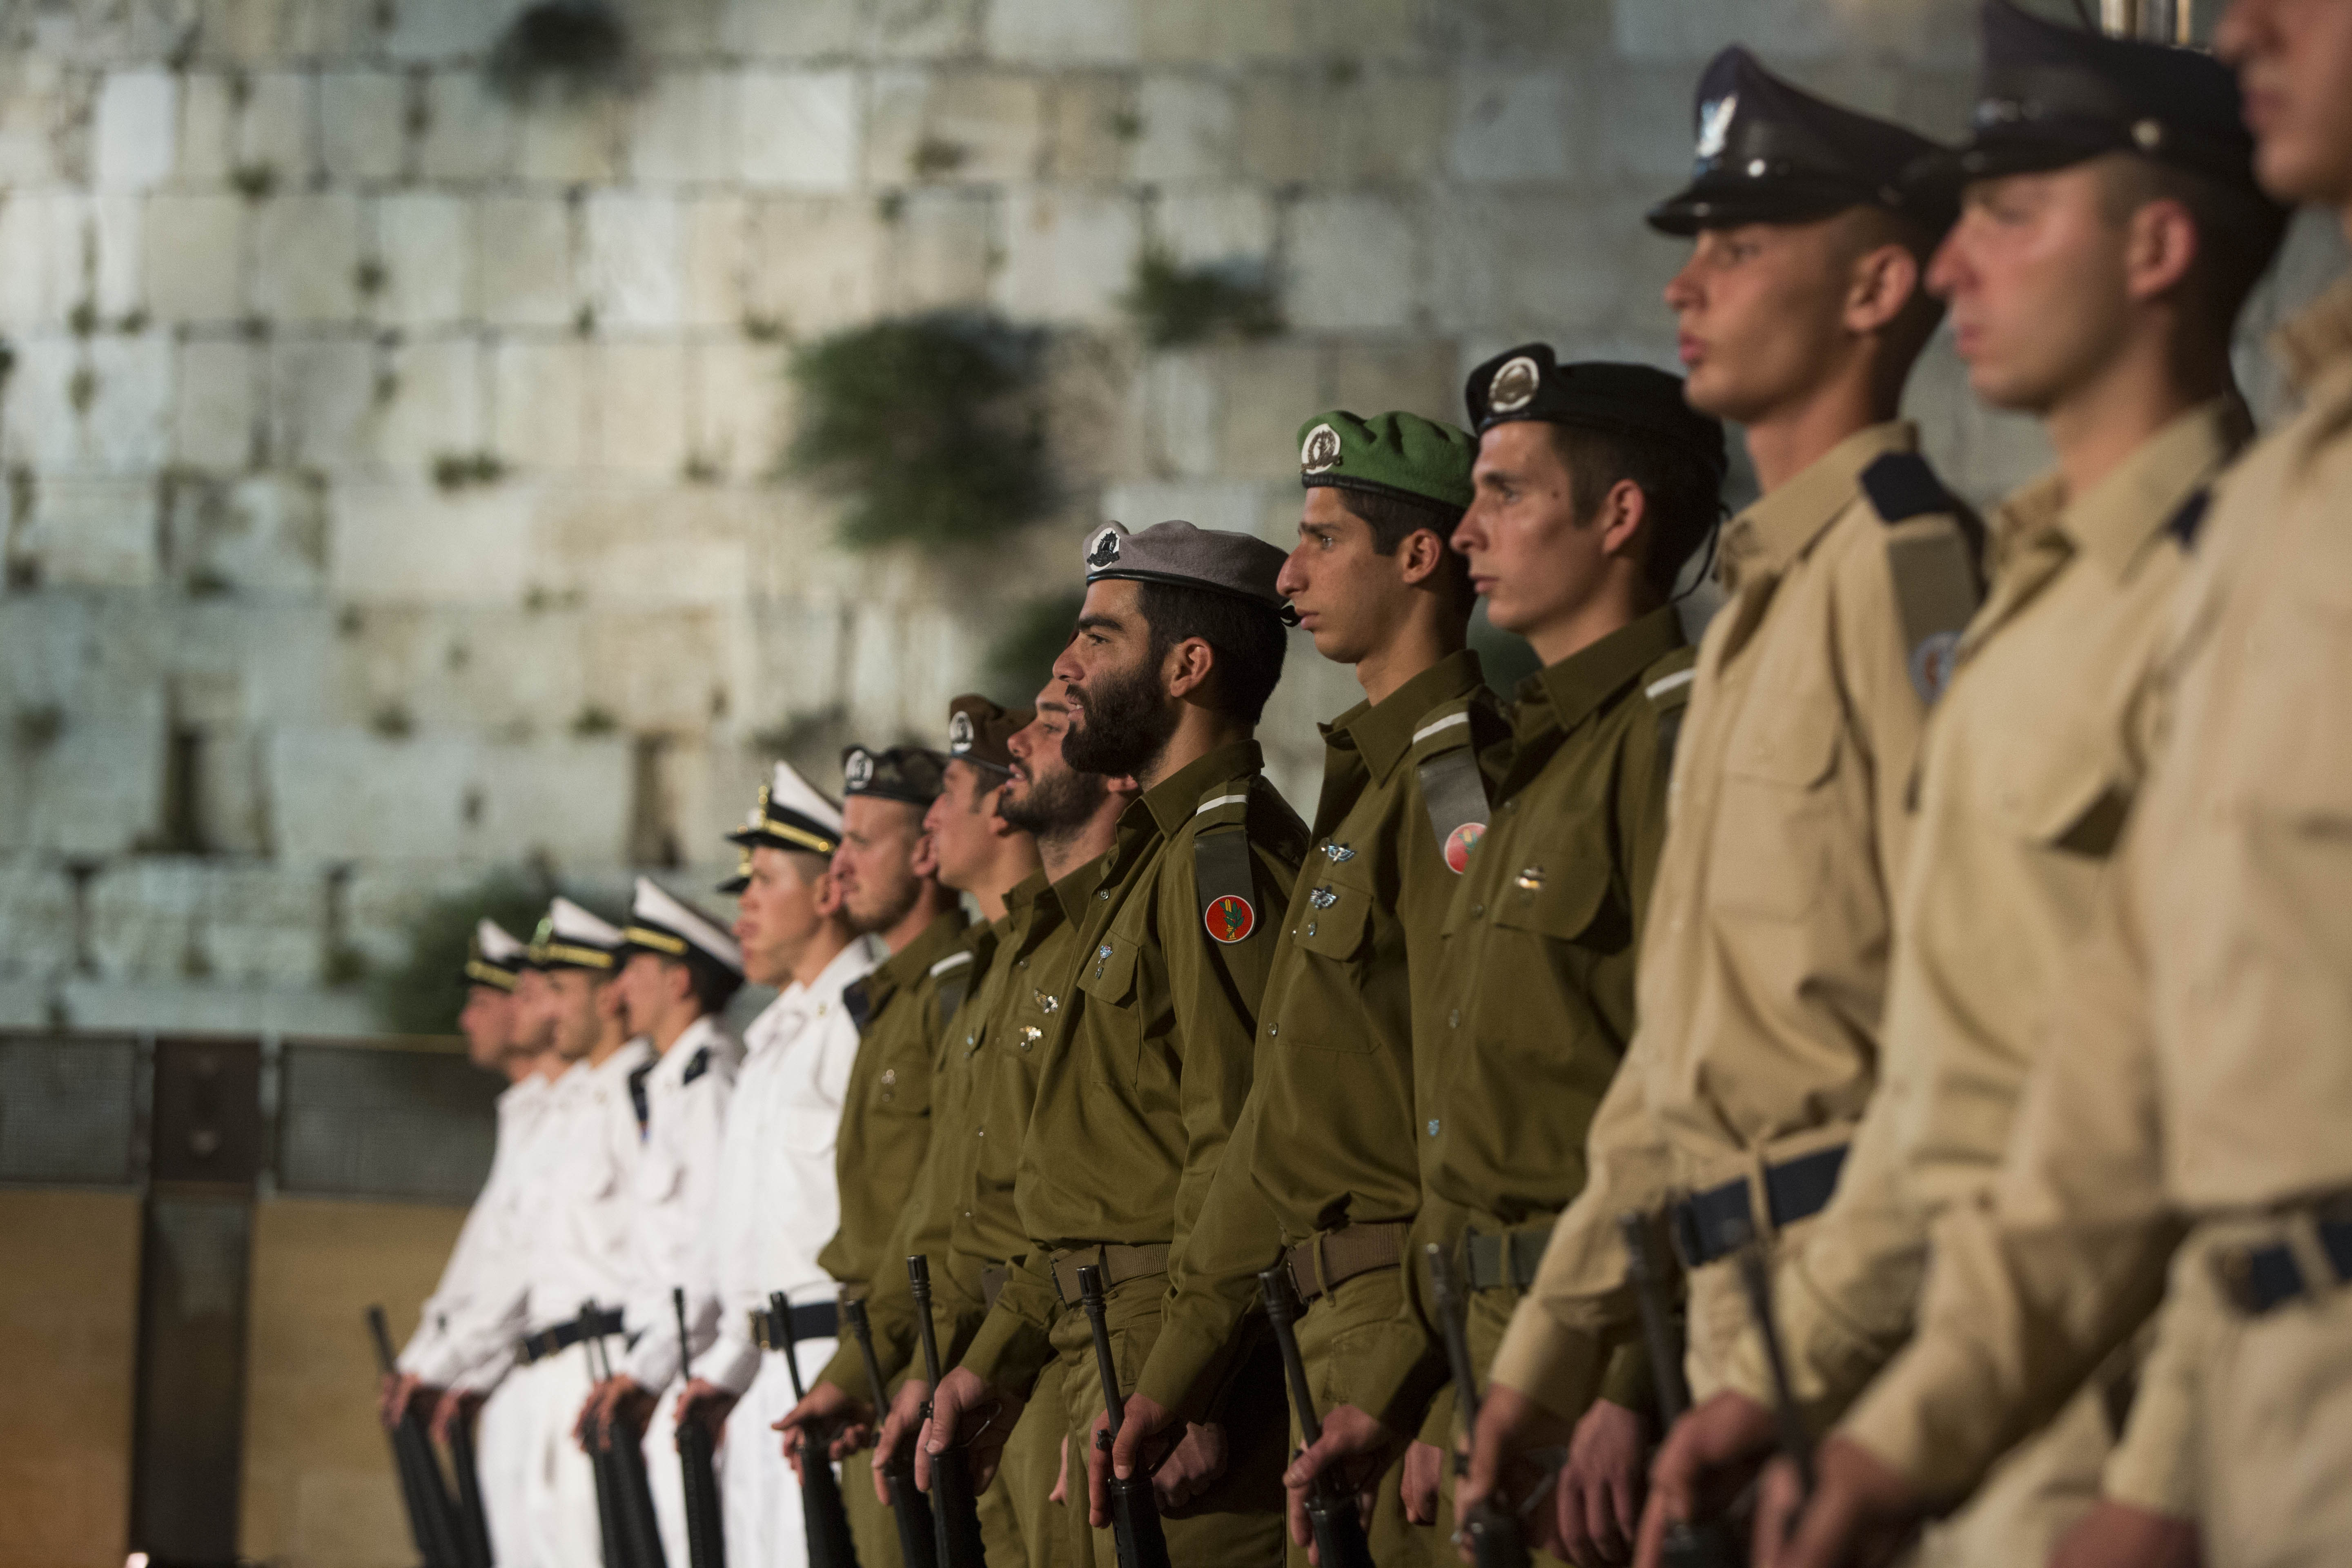 Israeli soldiers at the western wall on yom hazikaron or remembrance day